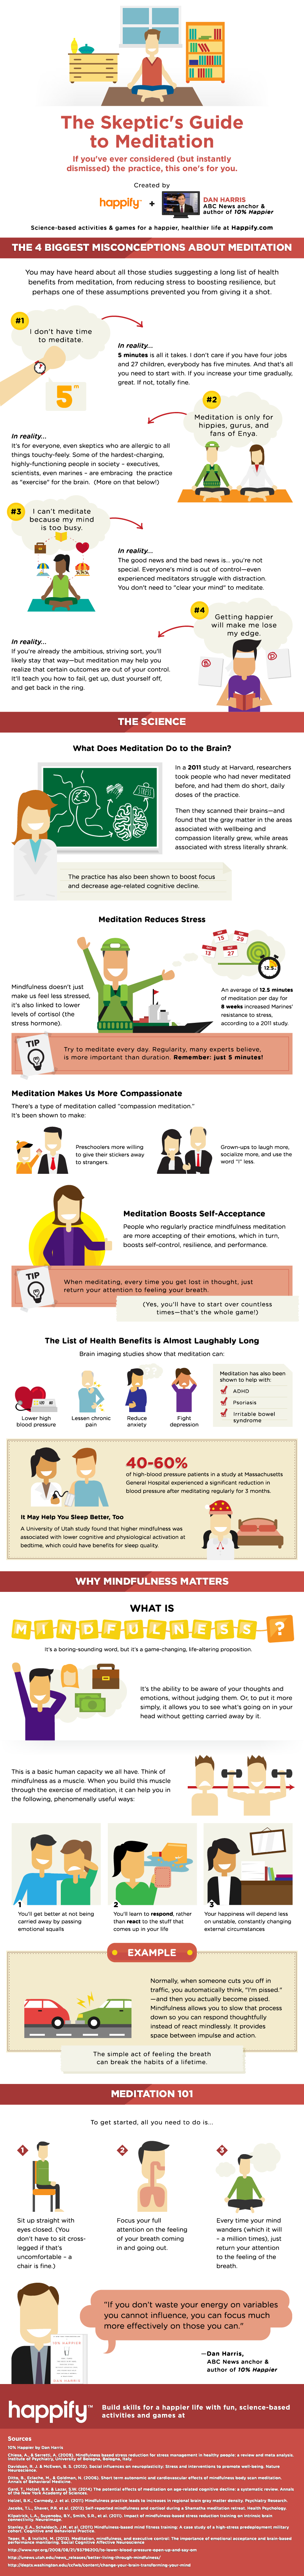 Infographic: The Skeptic's Guide to Meditation